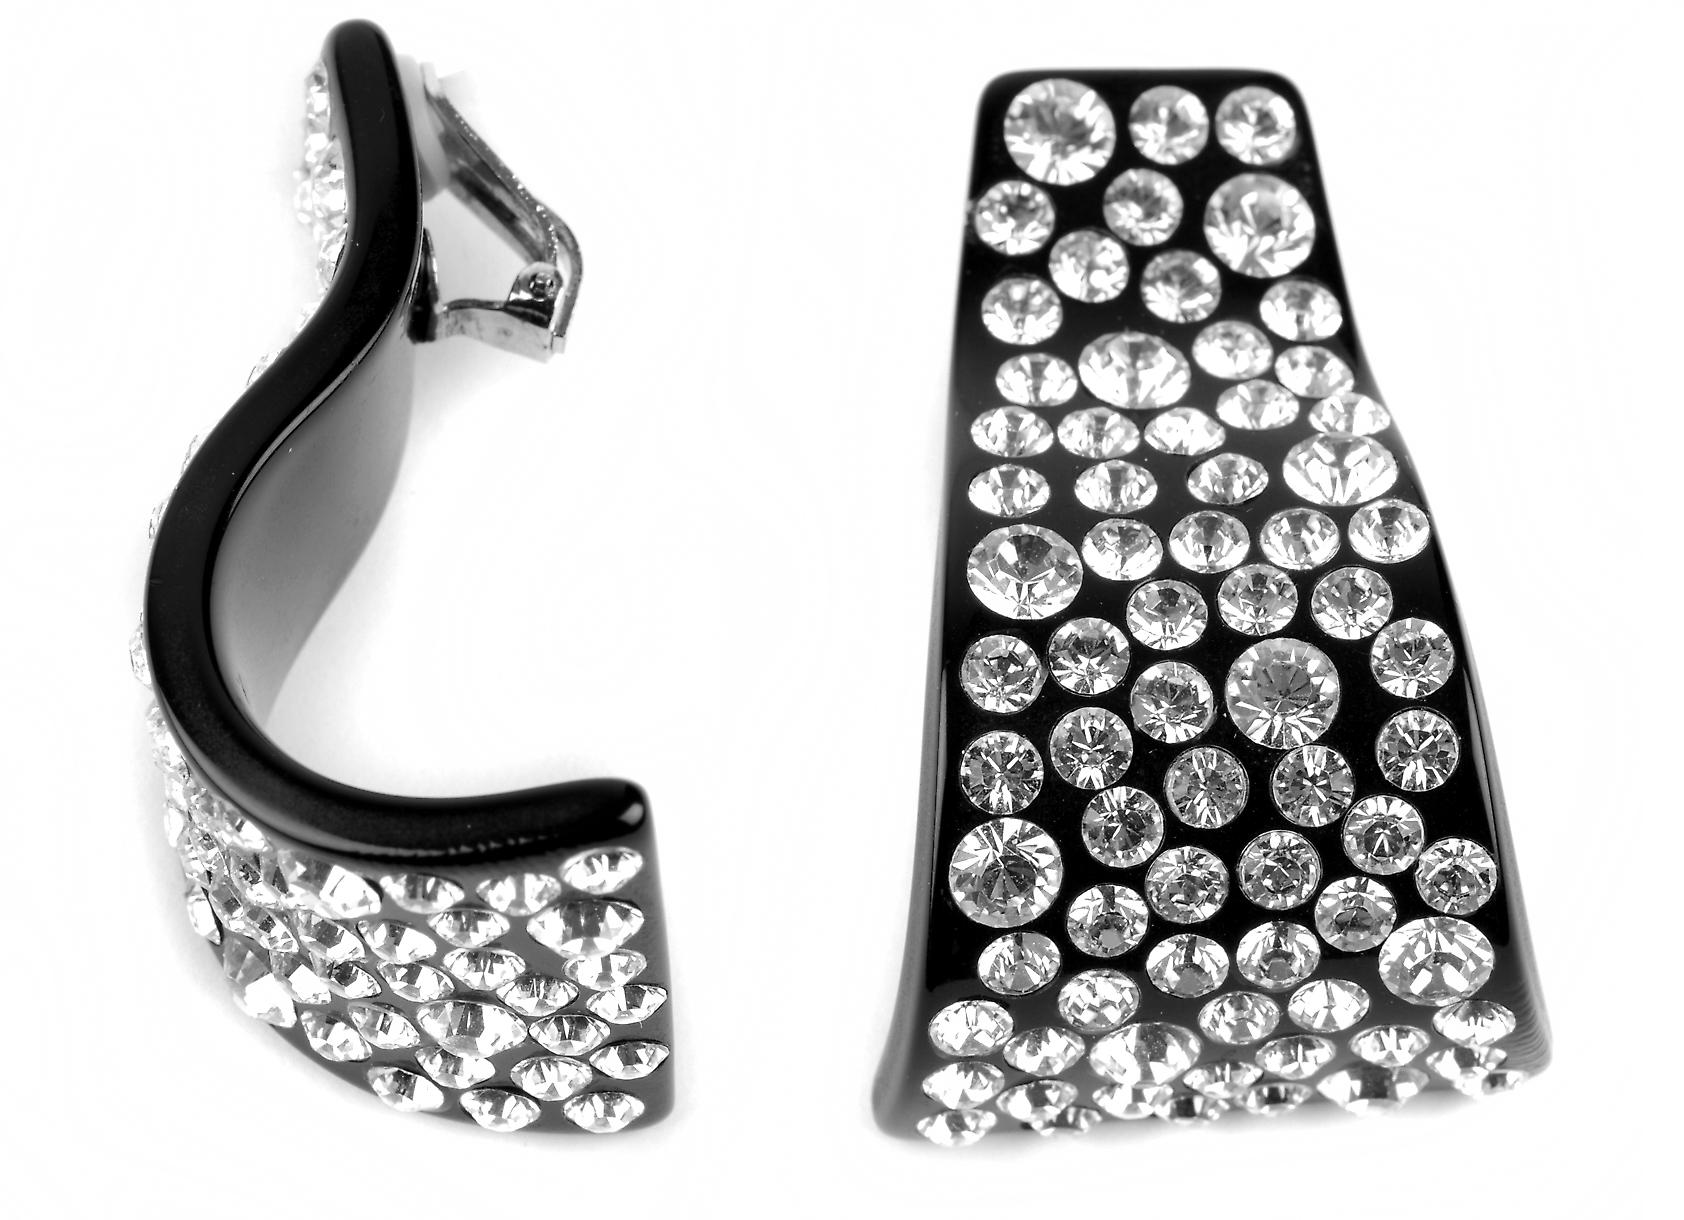 Waooh - Fashion Jewellery - WJ0798 - D'Oreille earrings with Swarovski Rhinestones Style Black Diamond on Mount Perspex